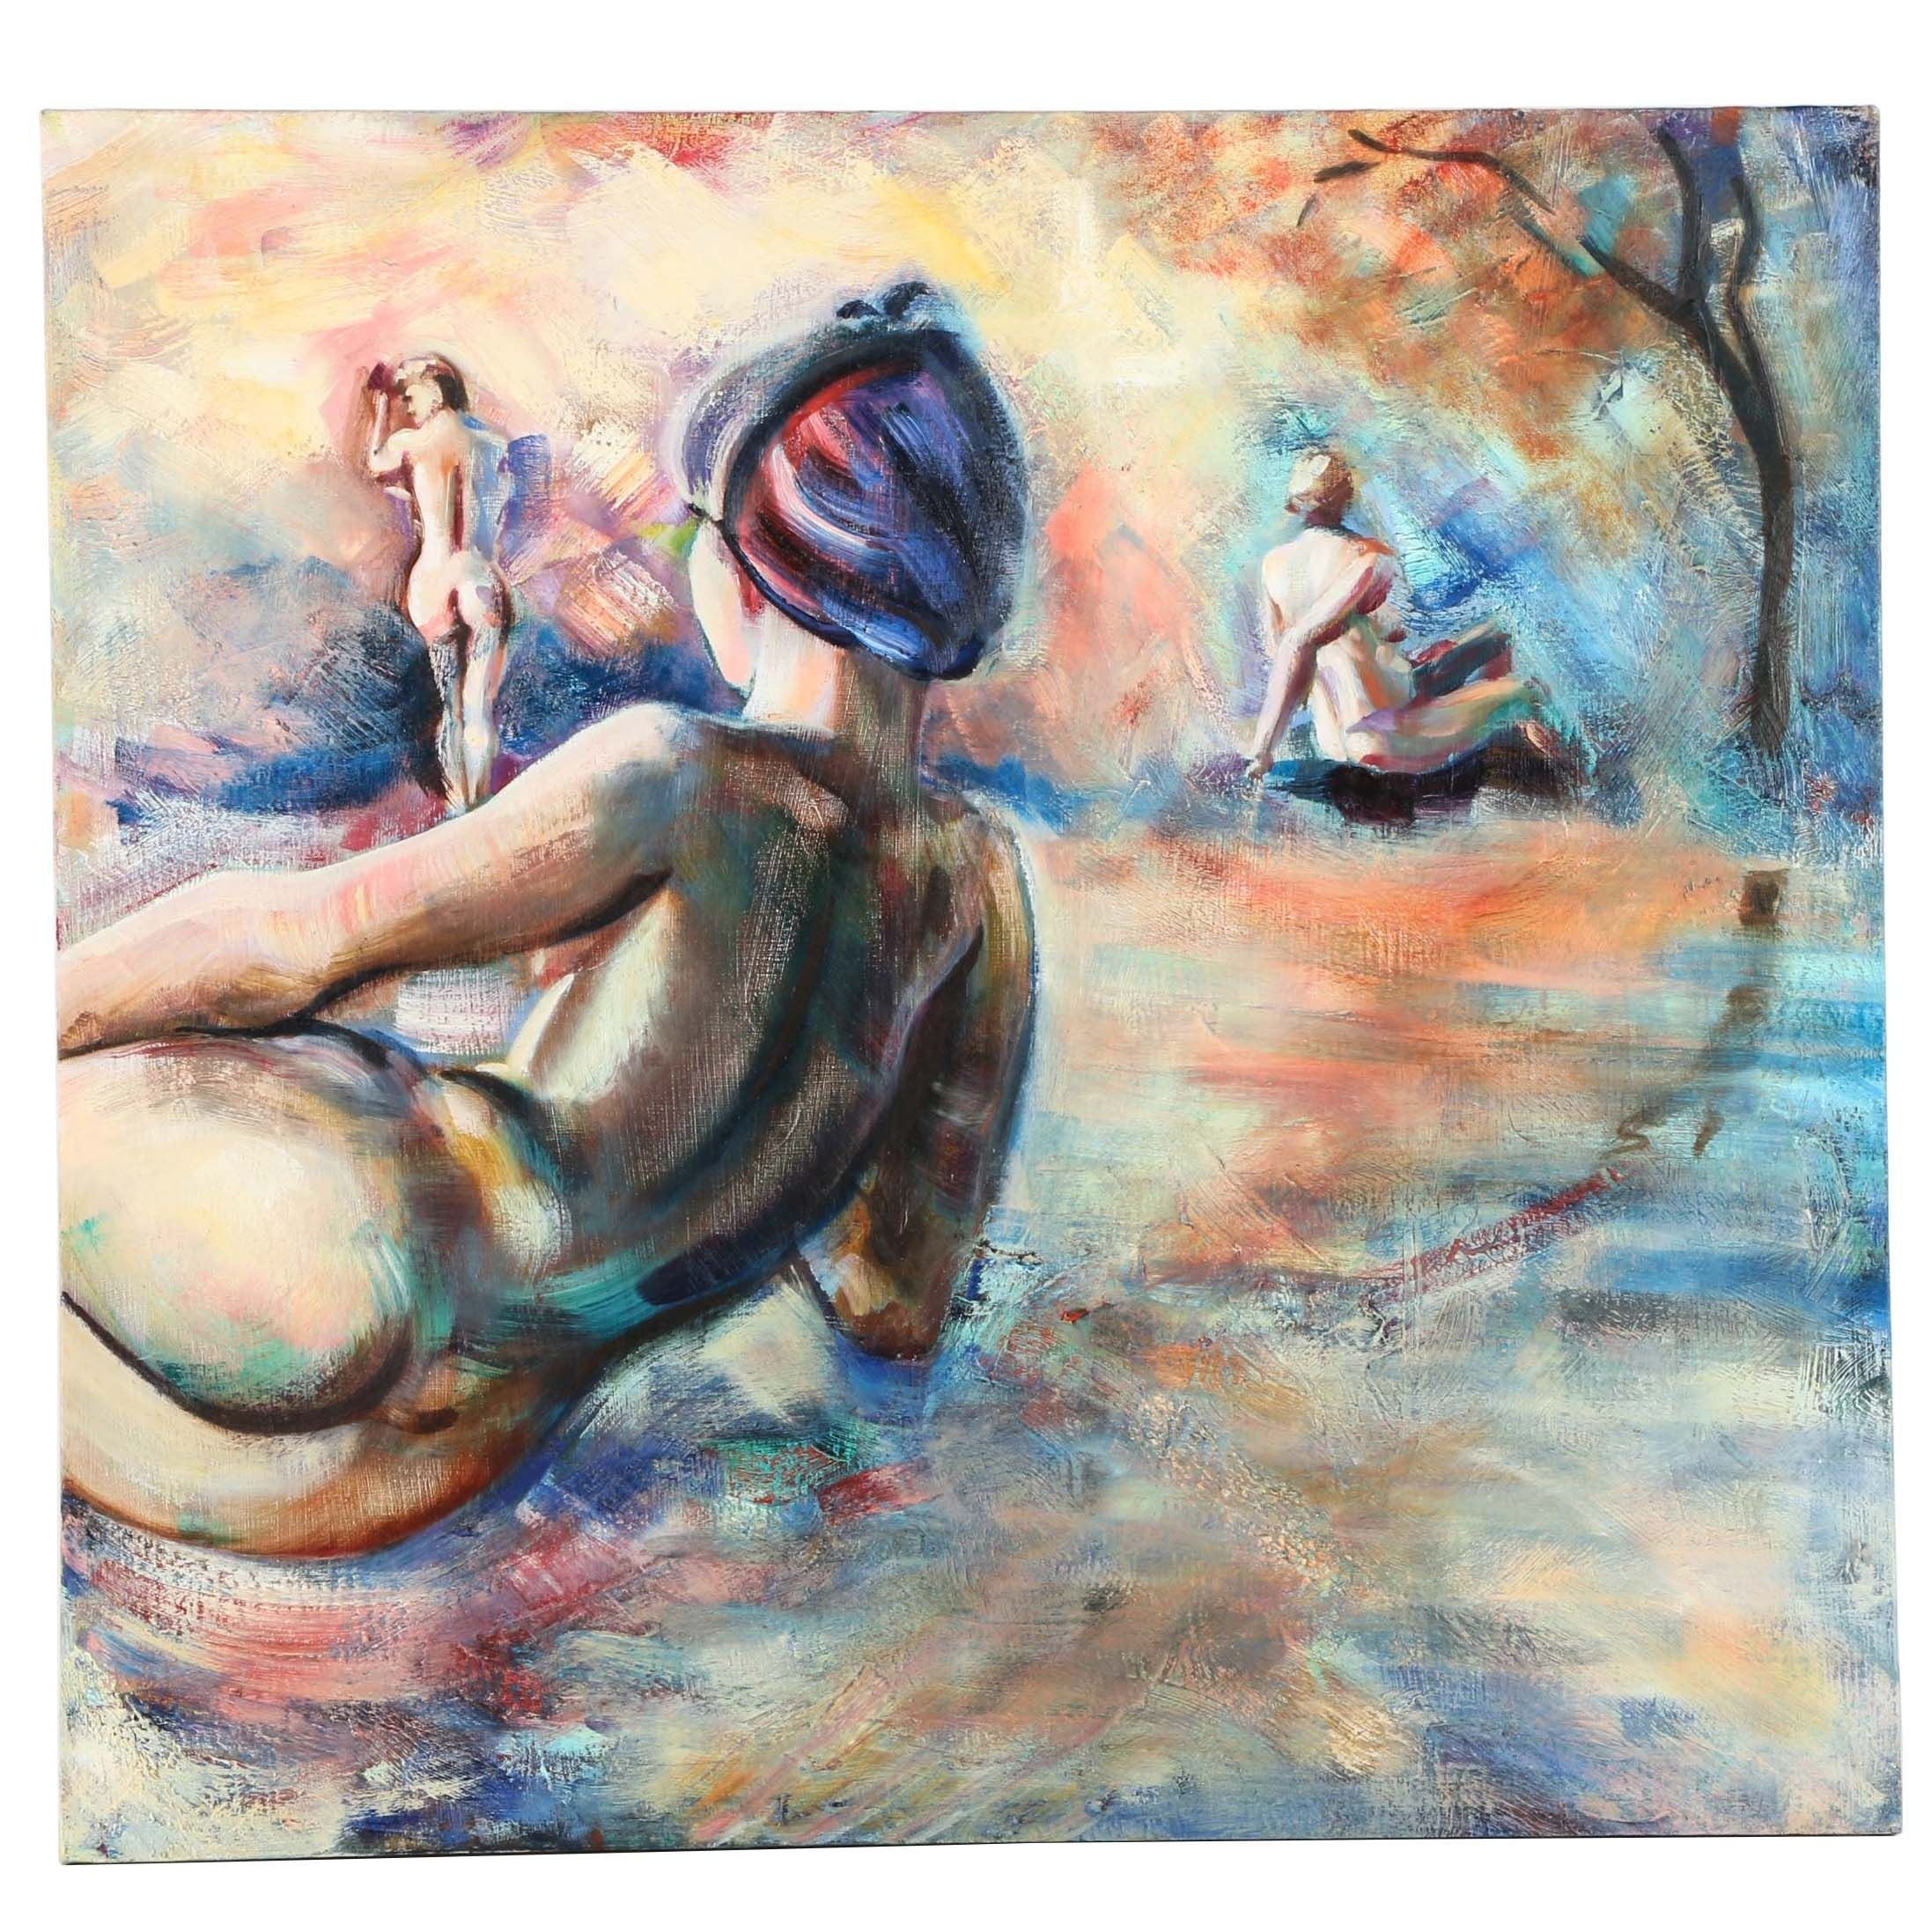 Oil Painting on Canvas of Three Female Nudes